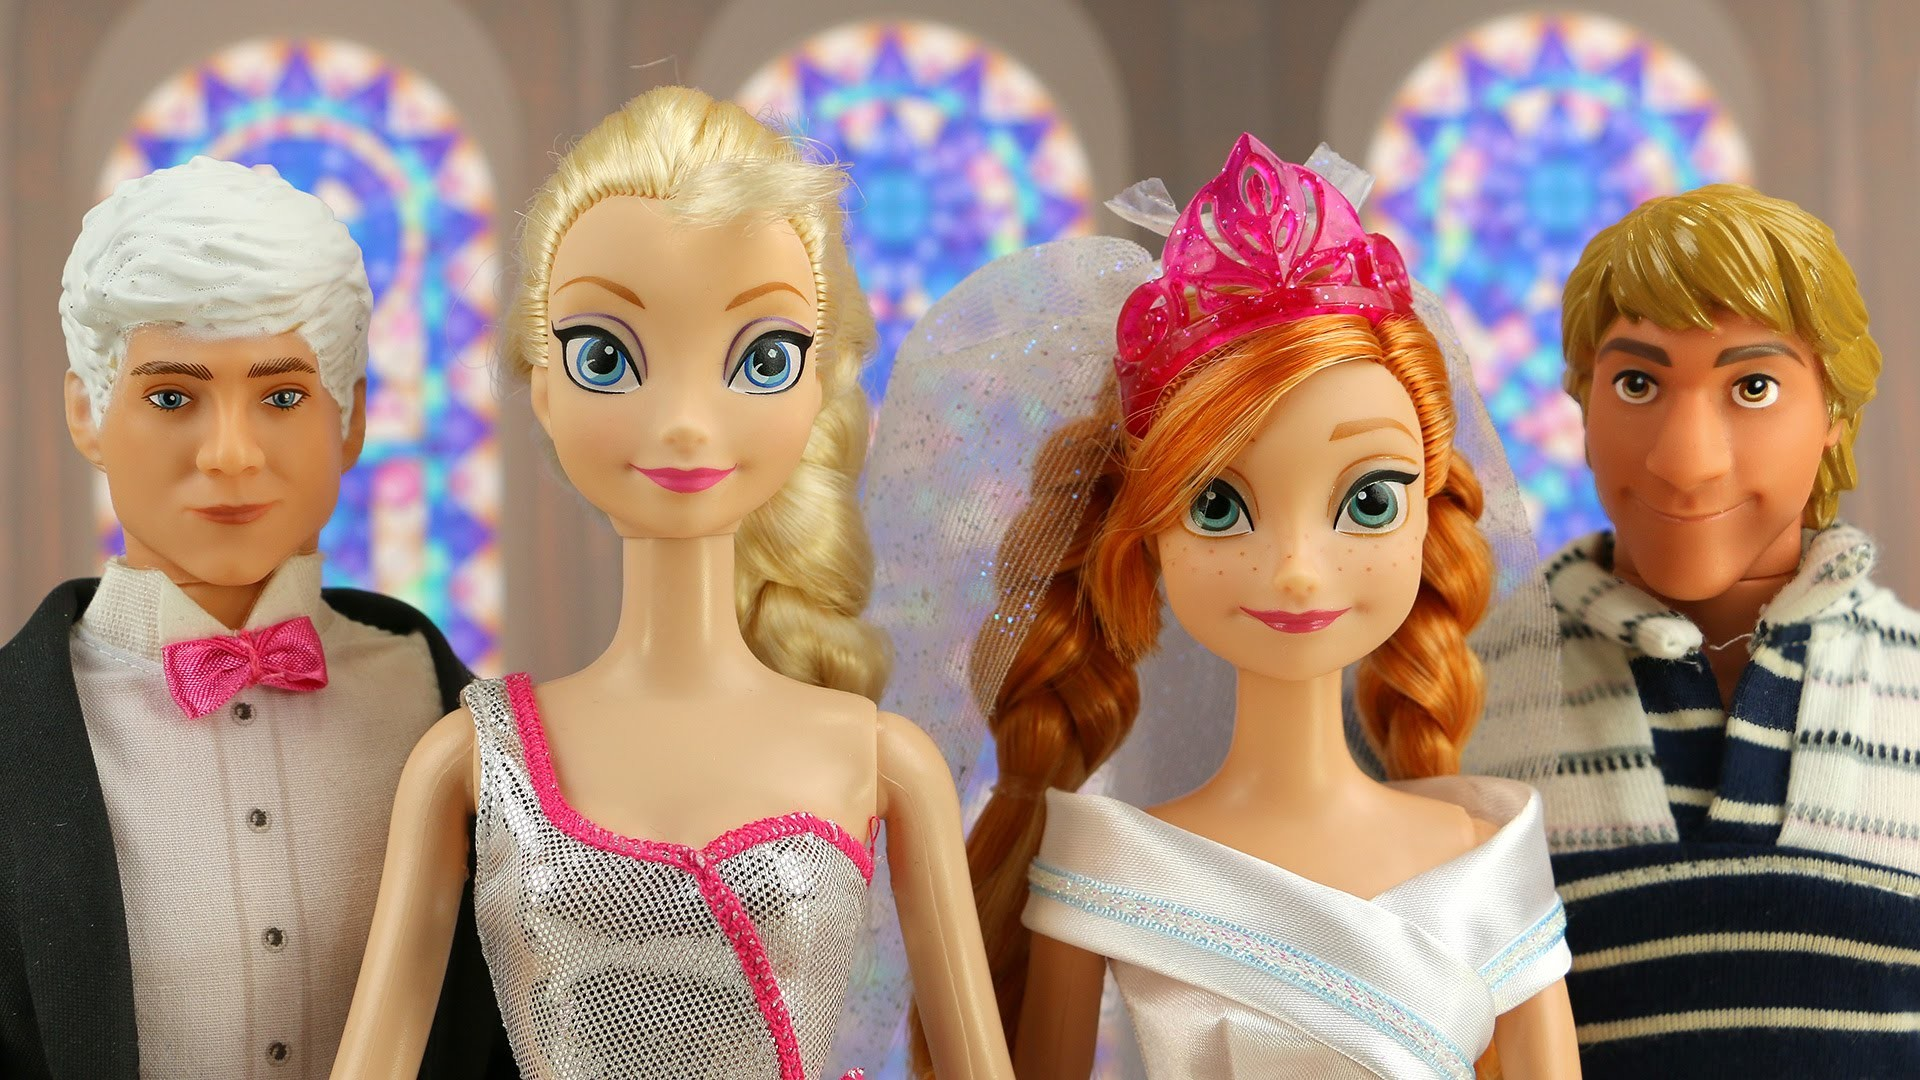 Anna and Jack Frost Wedding – Can Frozen Elsa Stop It in Time?  DisneyToysFan – YouTube